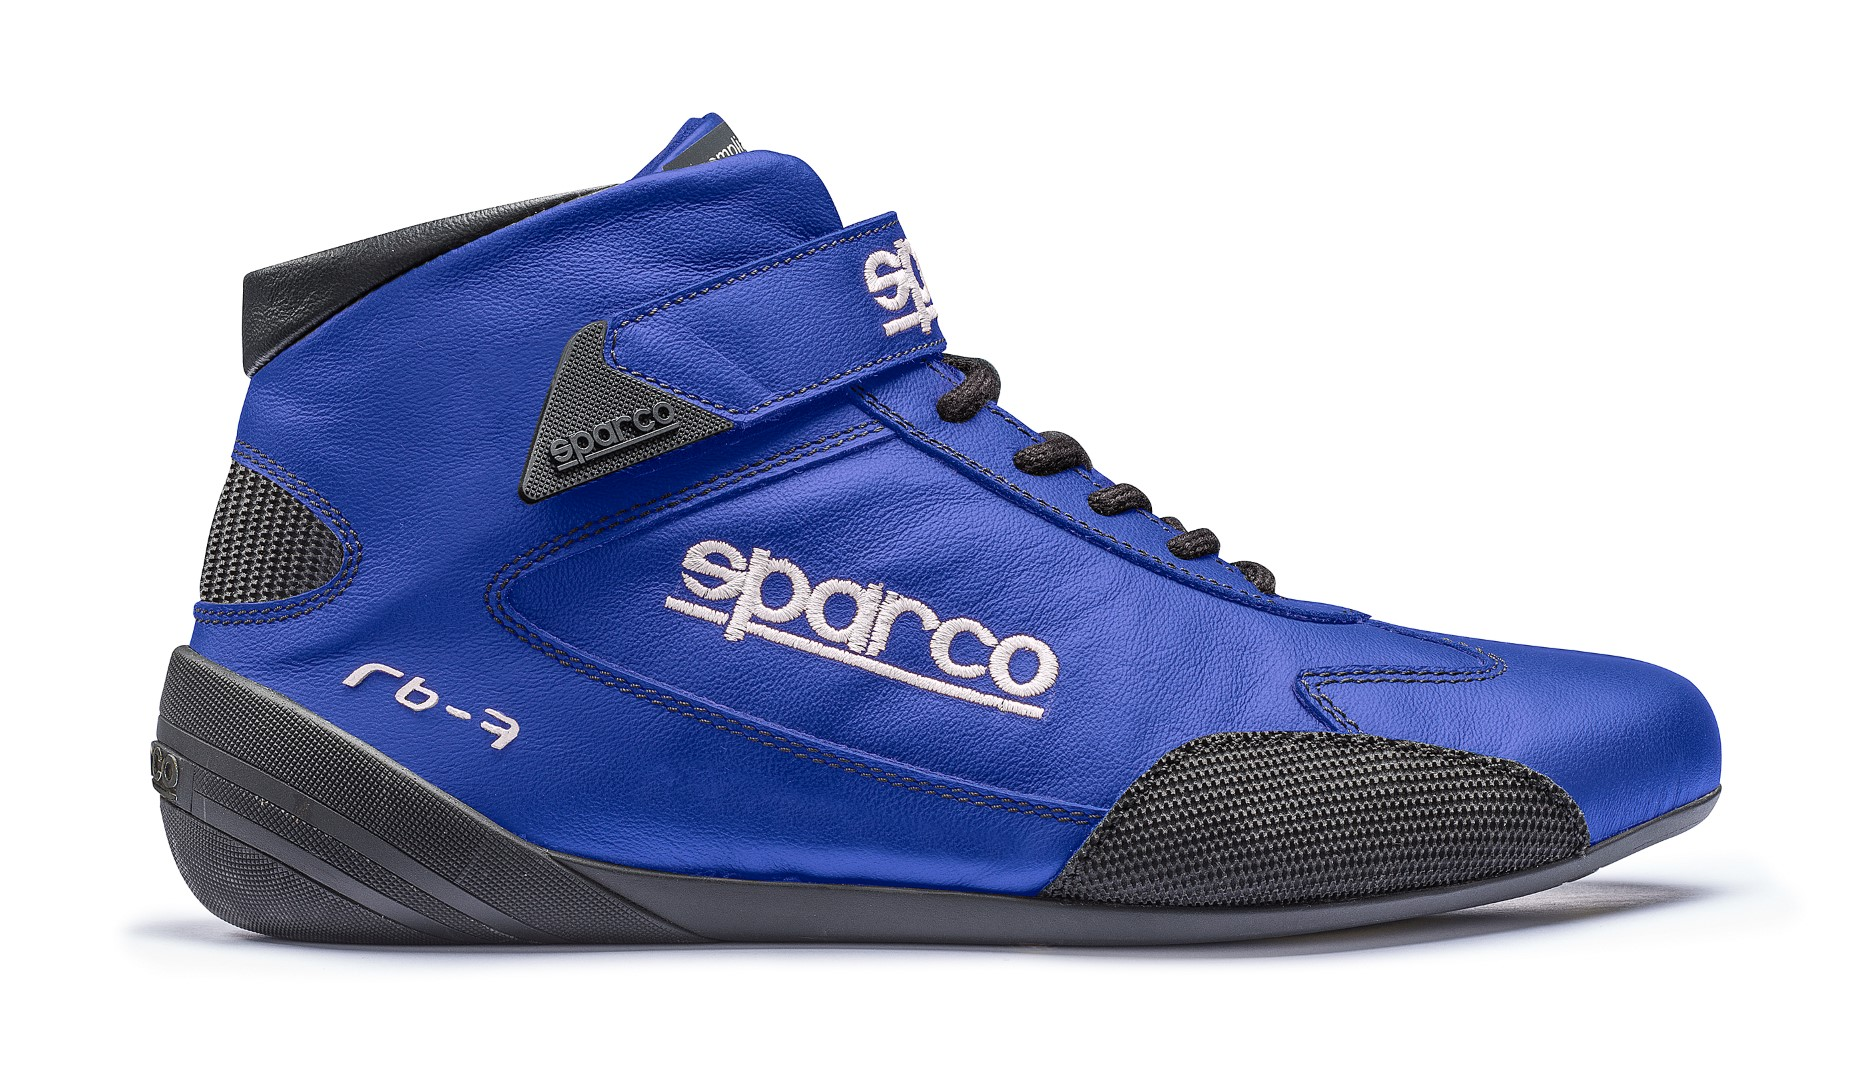 Sparco Blue Cross RB-7 Driving Shoes EU 45 | US 11 - 00122445AZ